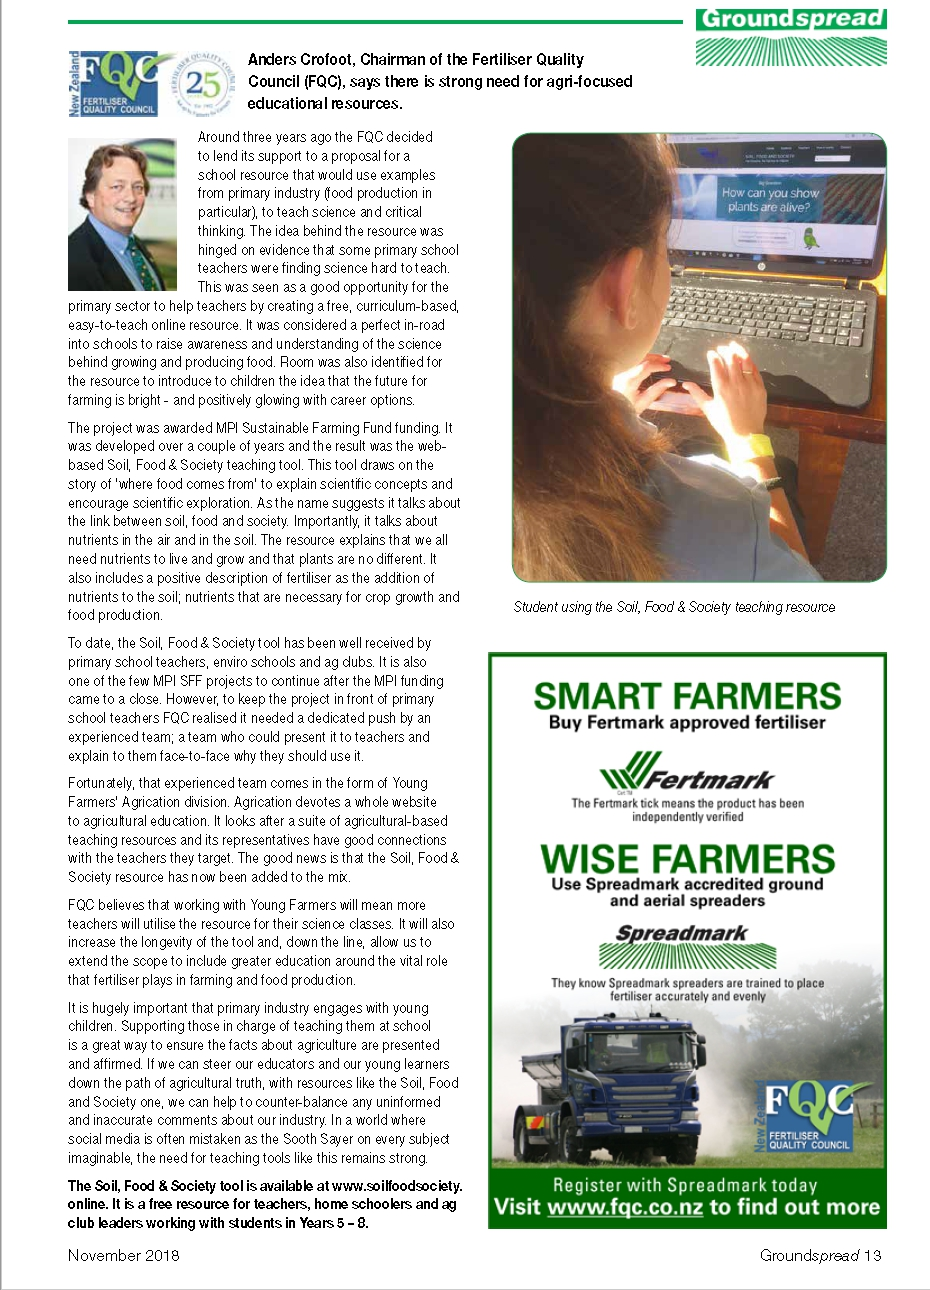 November2019-Groundspread-Strong need for agri-focused educational resources